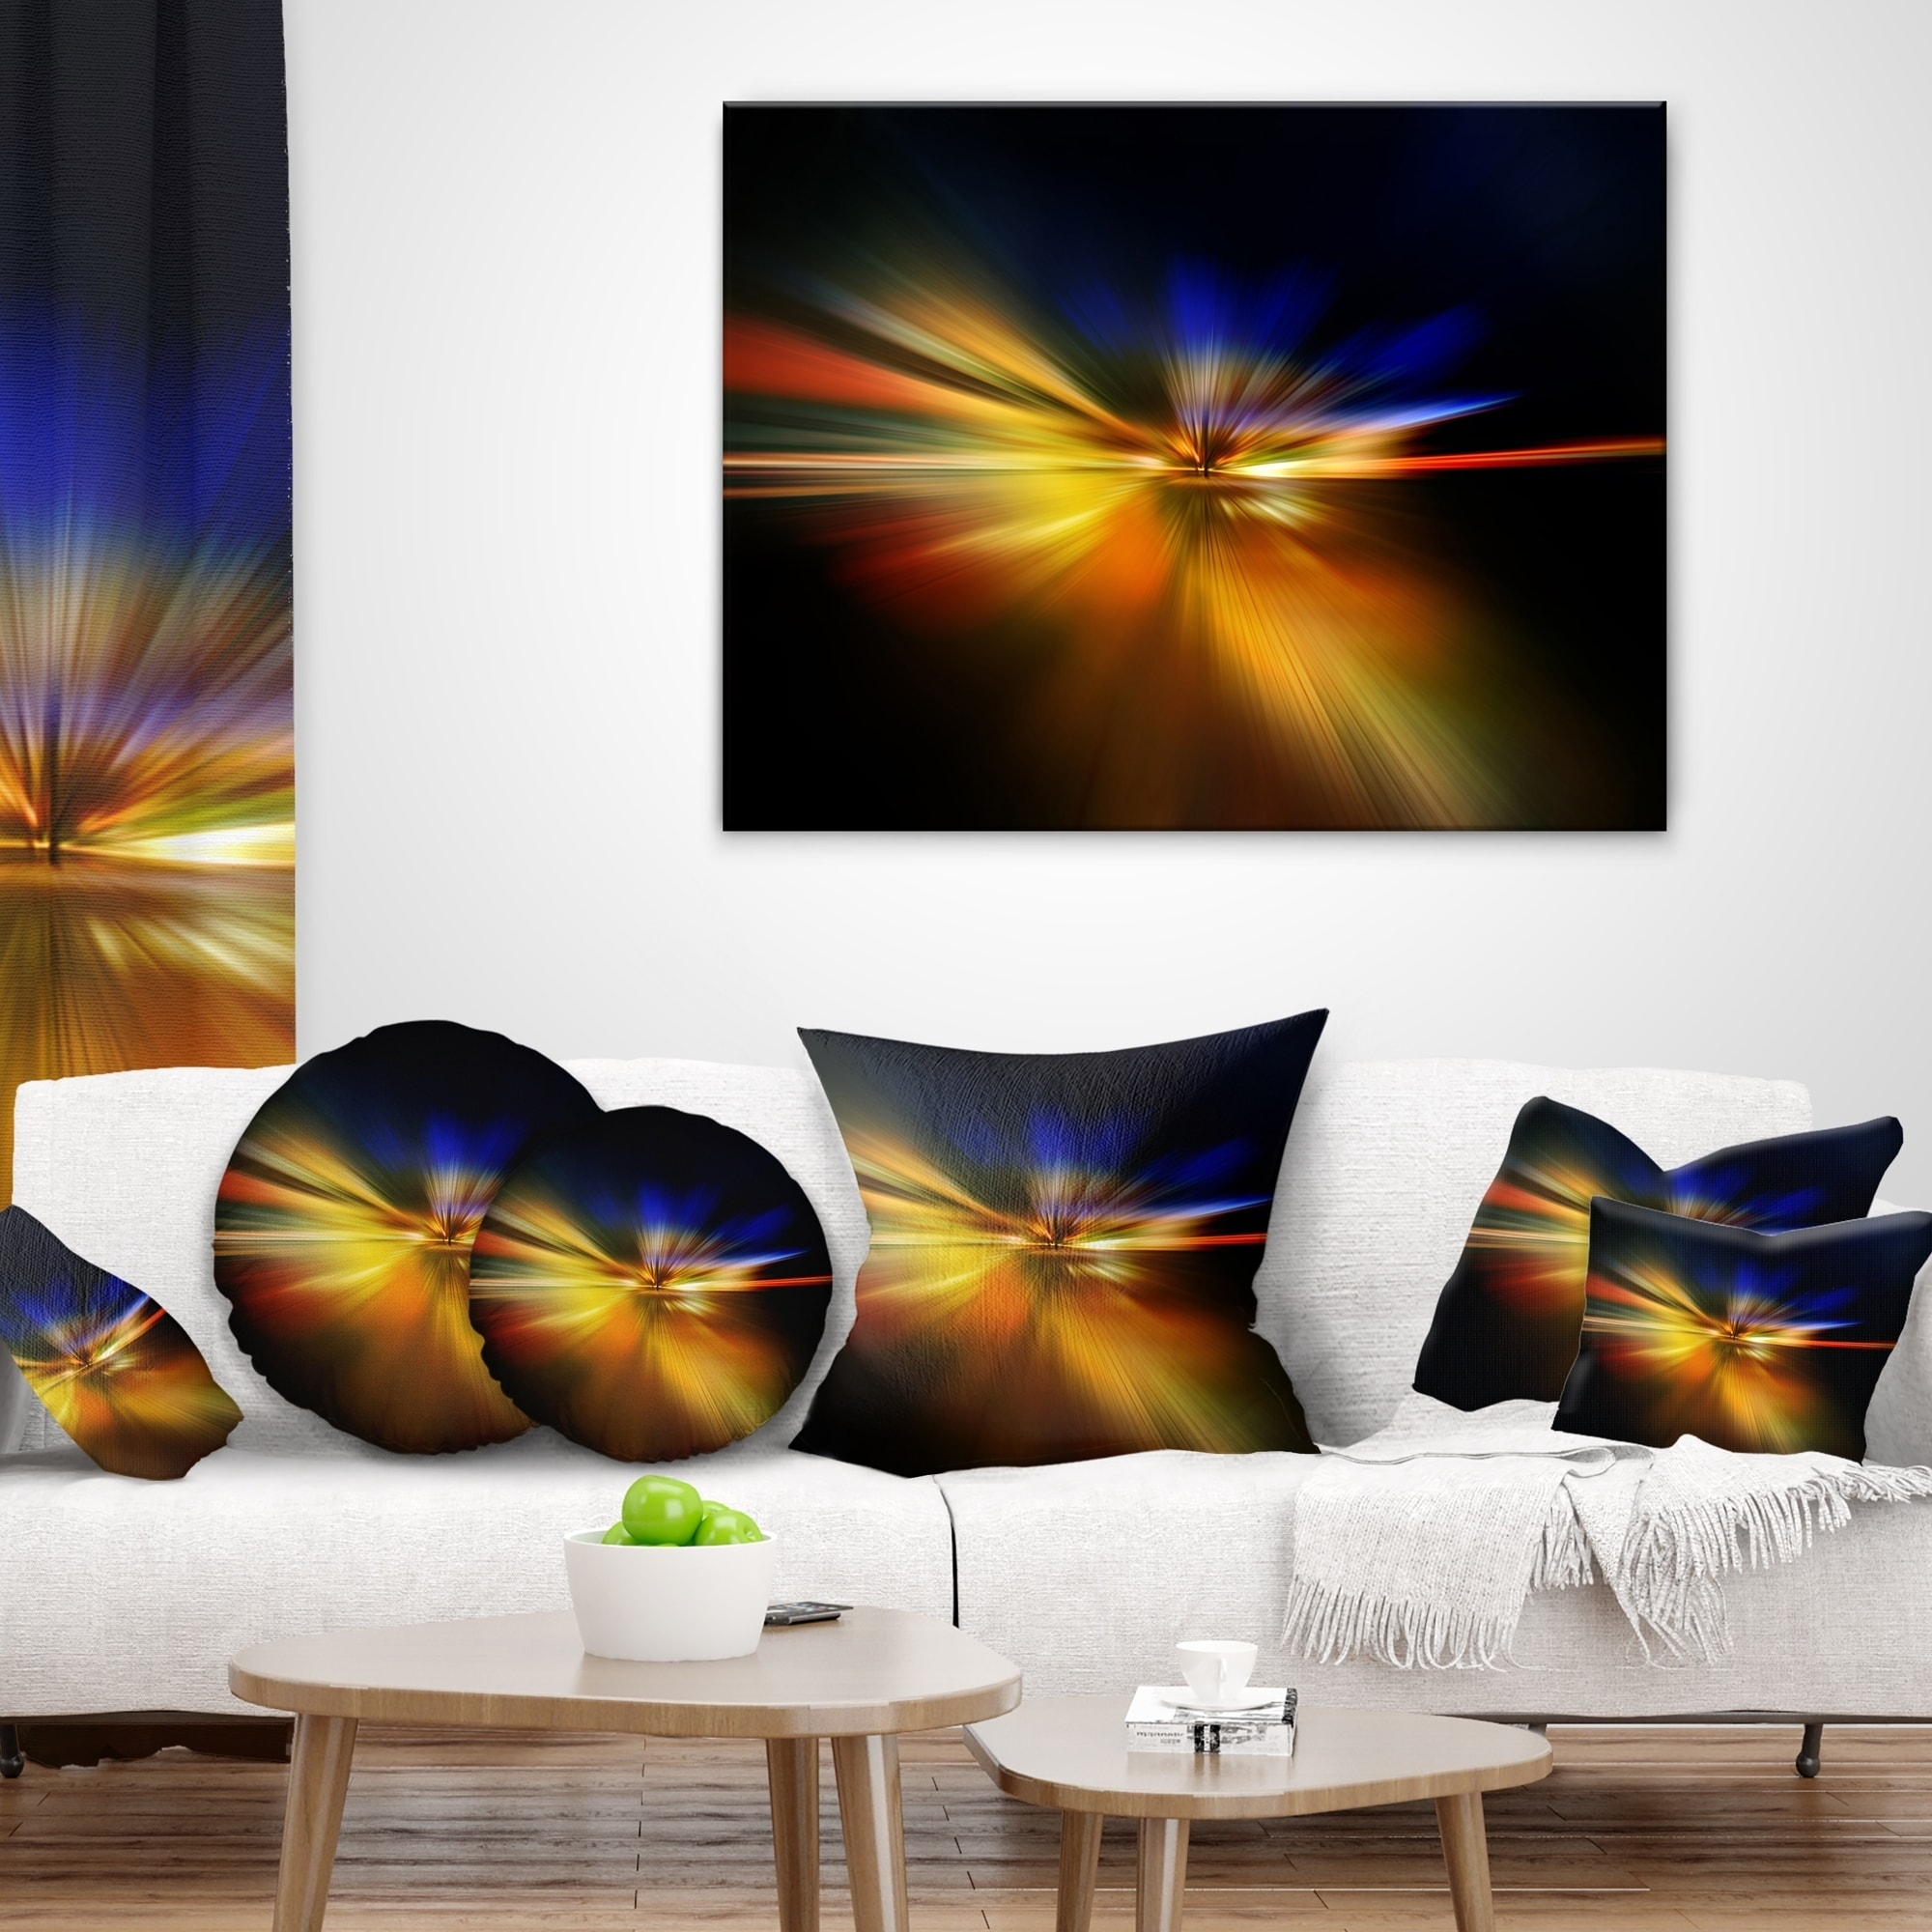 Designart CU8263-26-26 Explosion of Light in Black Abstract Cushion Cover for Living Room Sofa Throw Pillow 26 x 26